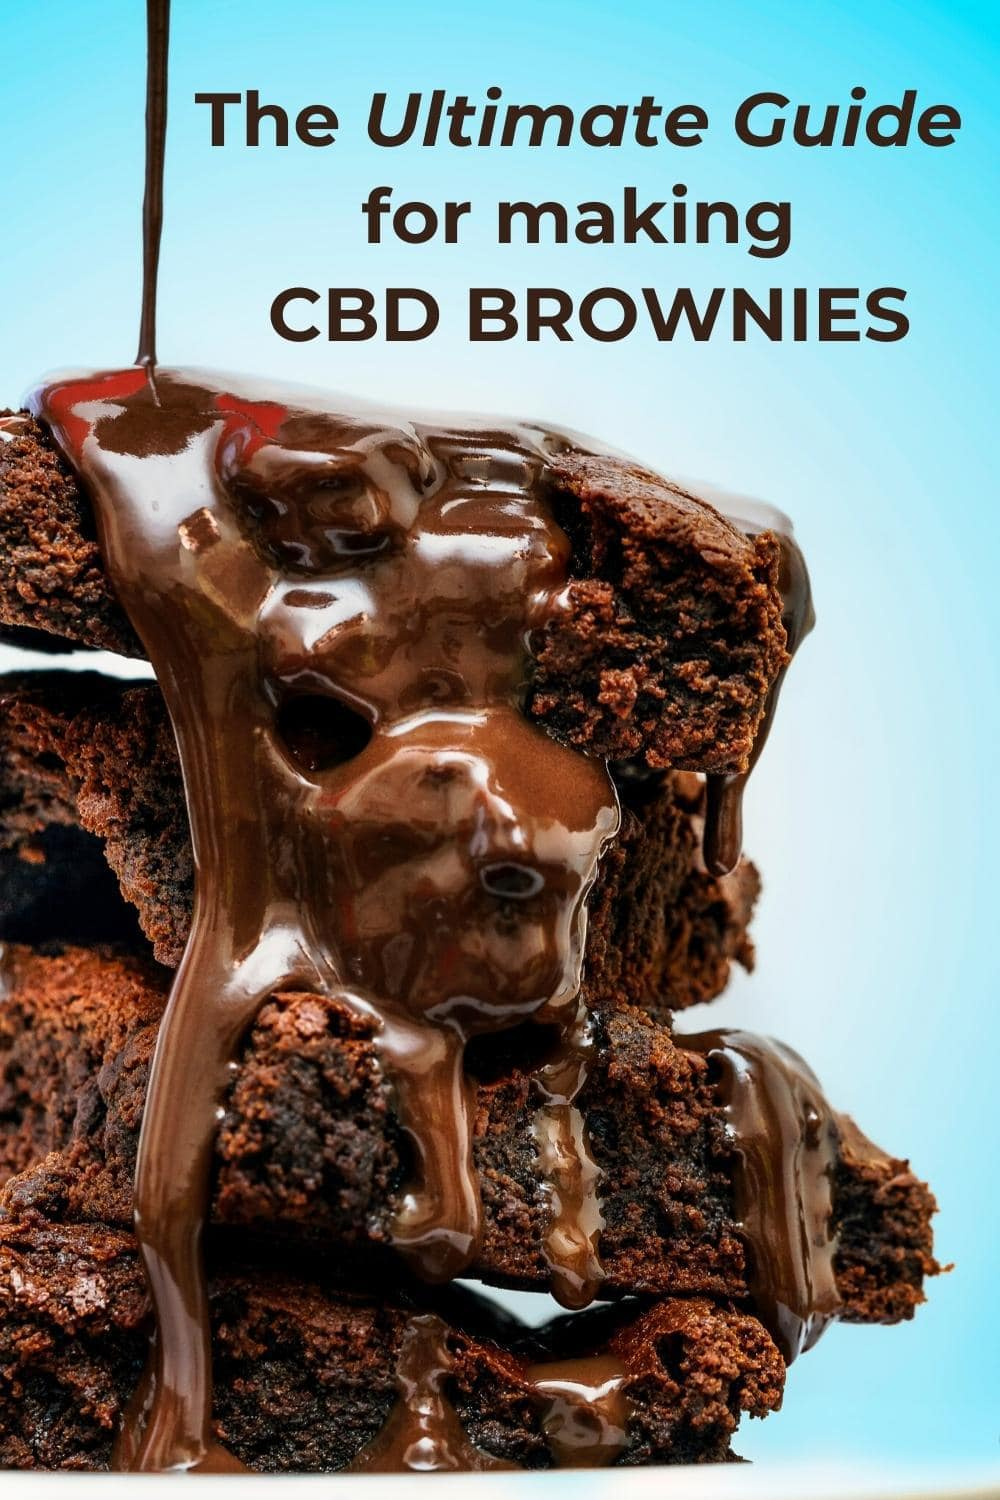 The Ultimate Guide To Making CBD Brownies